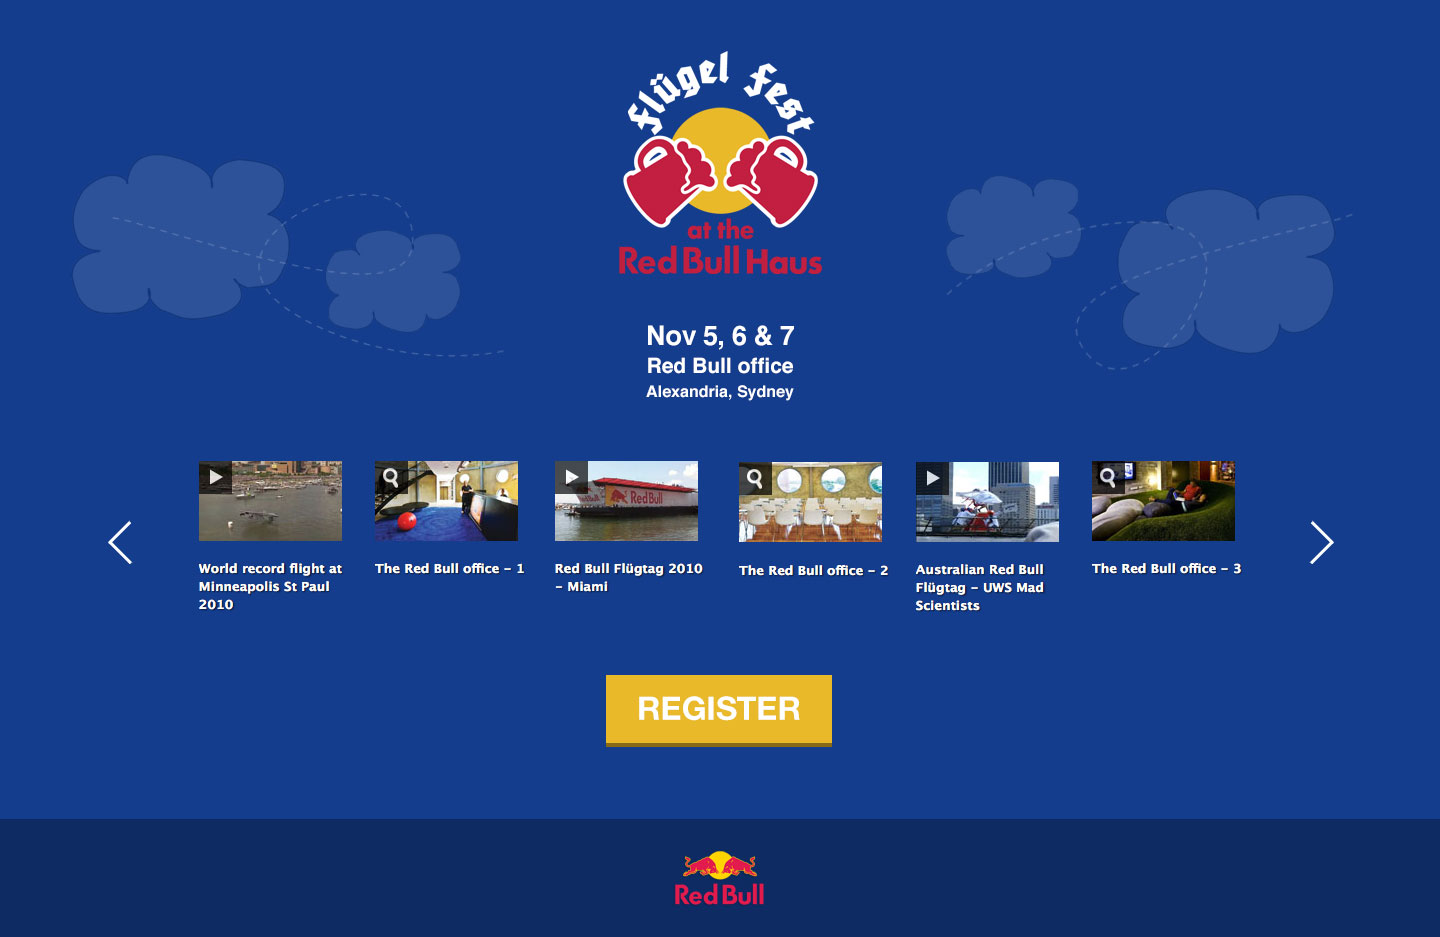 screenshot - Red Bull - Flugel Fest - desktop